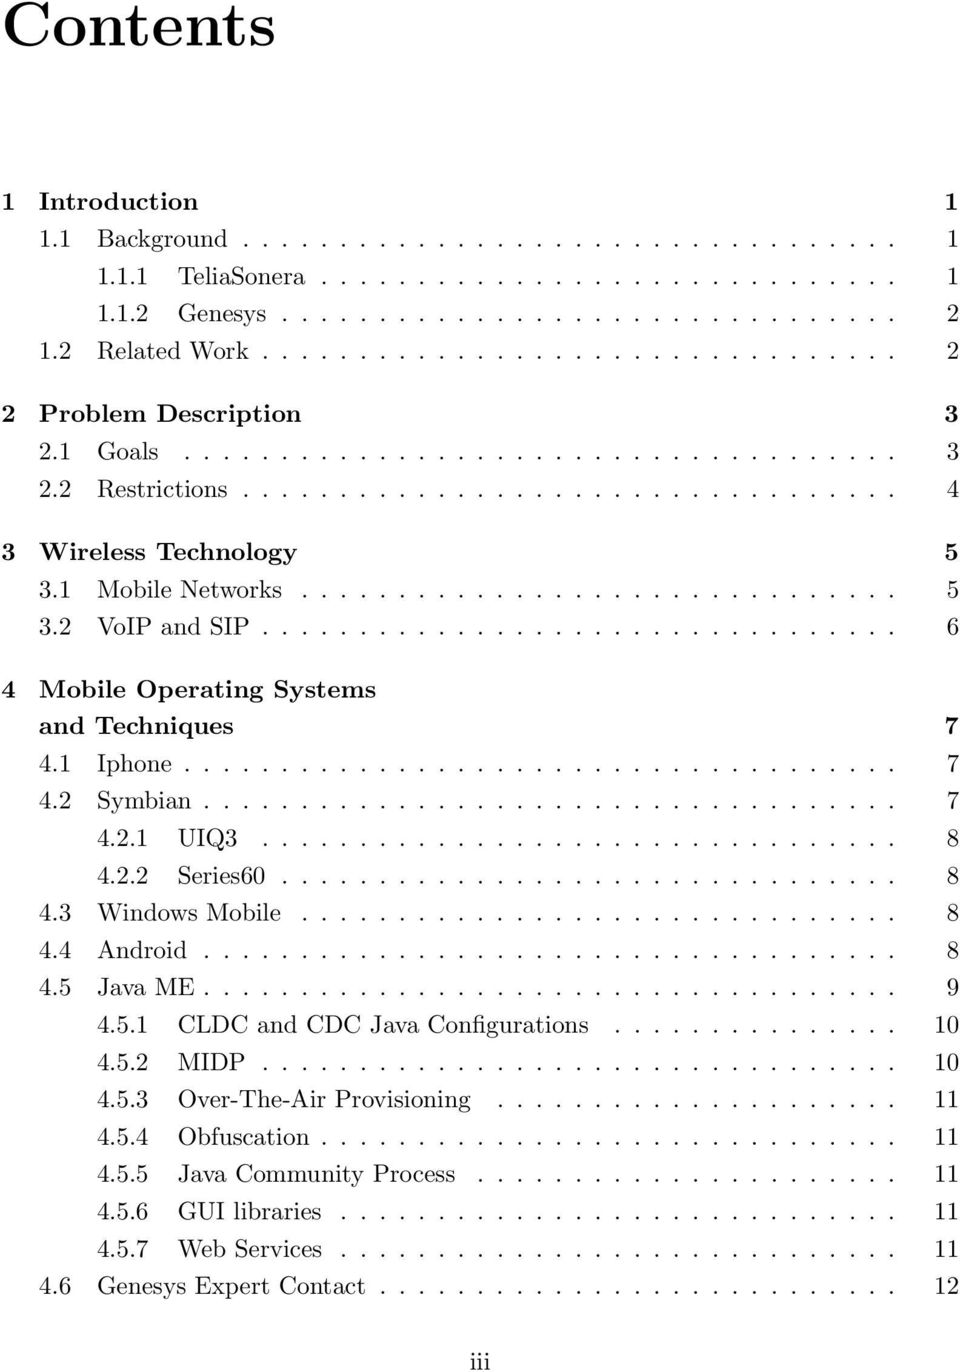 1 Mobile Networks............................... 5 3.2 VoIP and SIP................................. 6 4 Mobile Operating Systems and Techniques 7 4.1 Iphone..................................... 7 4.2 Symbian.